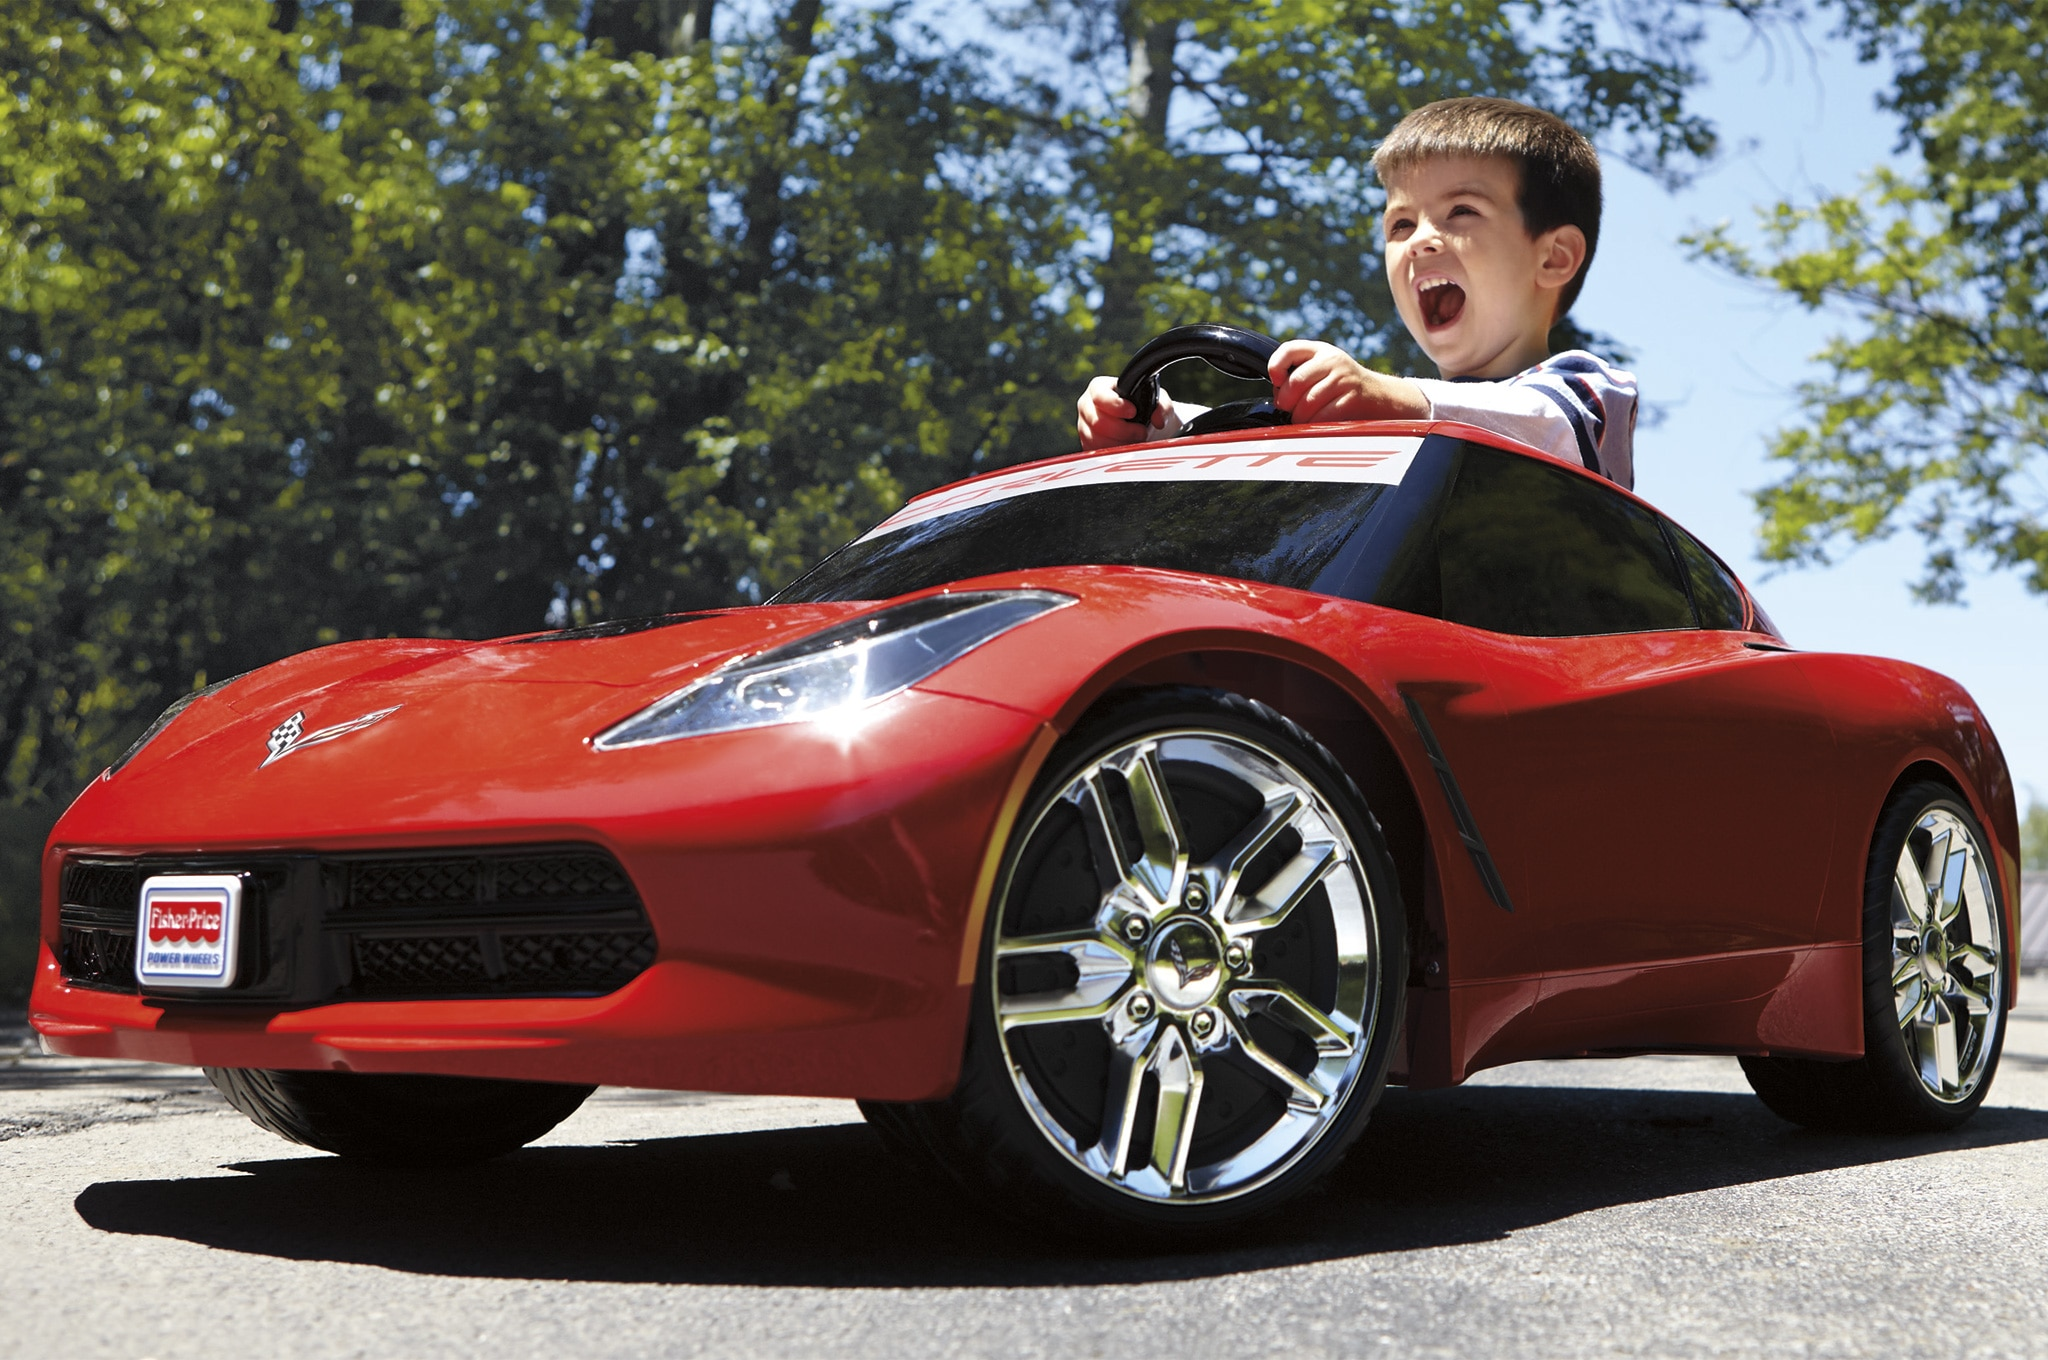 Power Wheels 2014 Chevrolet Corvette C7 Front Three Quarters View With Screaming Kid1